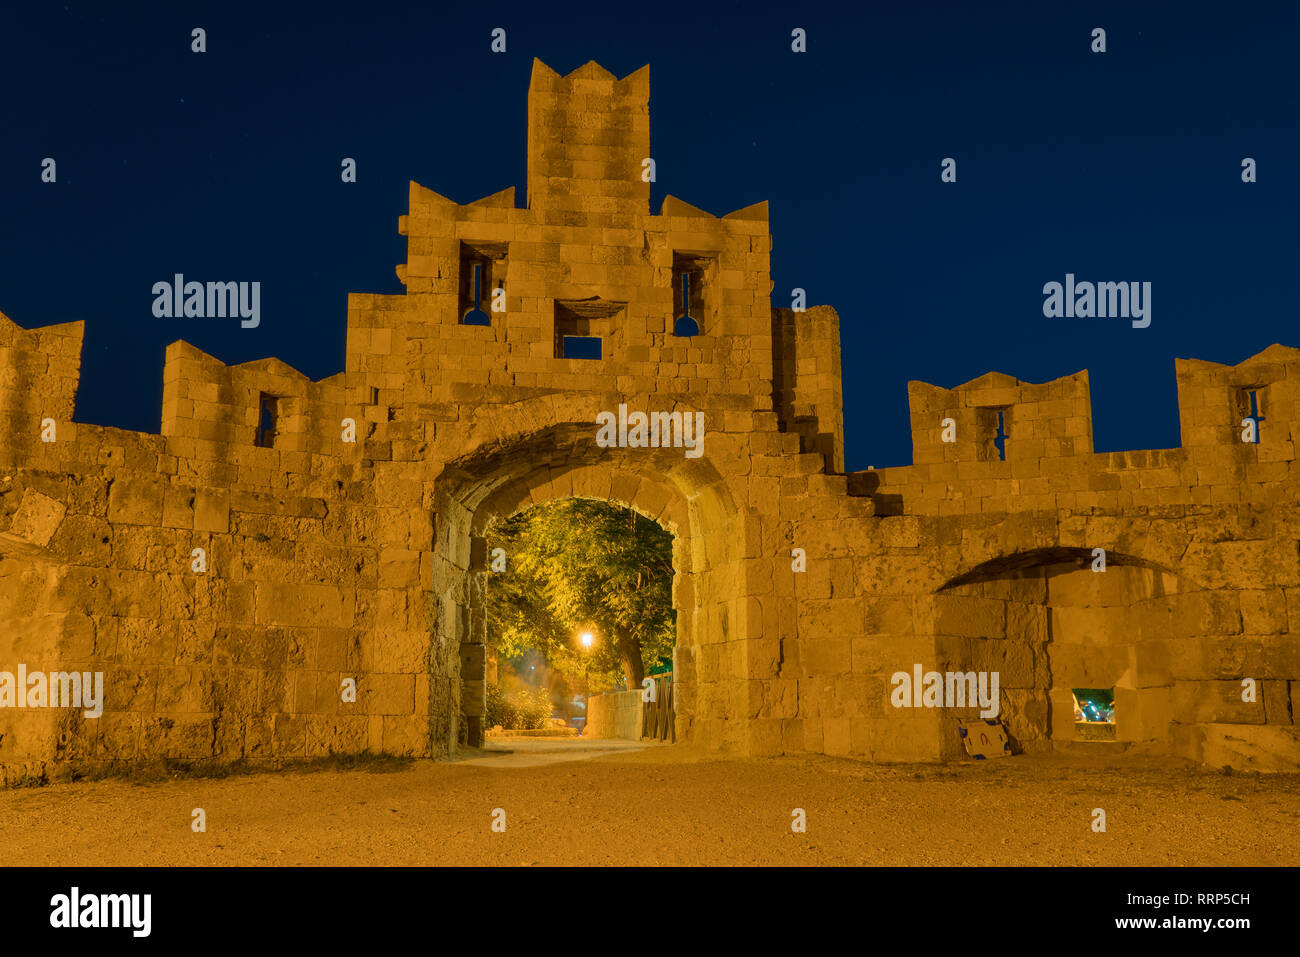 Castle on the Rhodos in greece - Stock Image